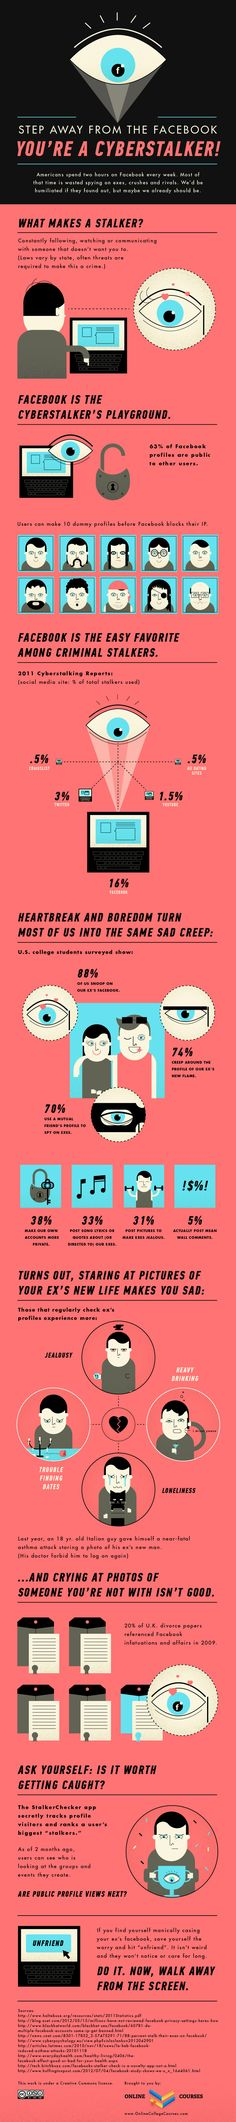 FANTASTIC Cyberstalking Infographic